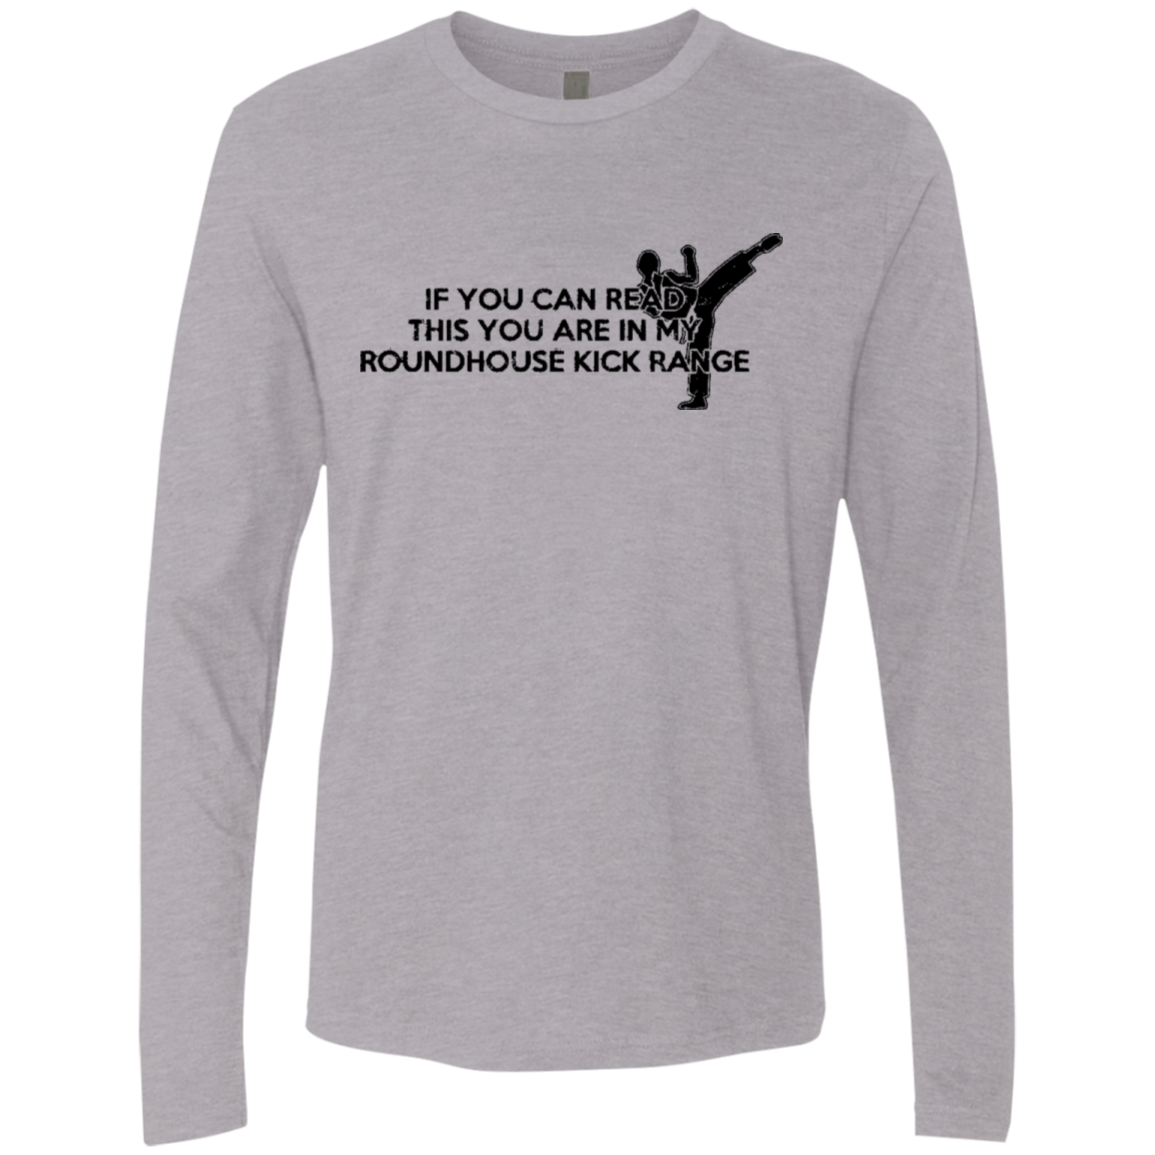 If You Can Read This You Are In My Roundhouse Kick Range Men's Long Sleeve Tee